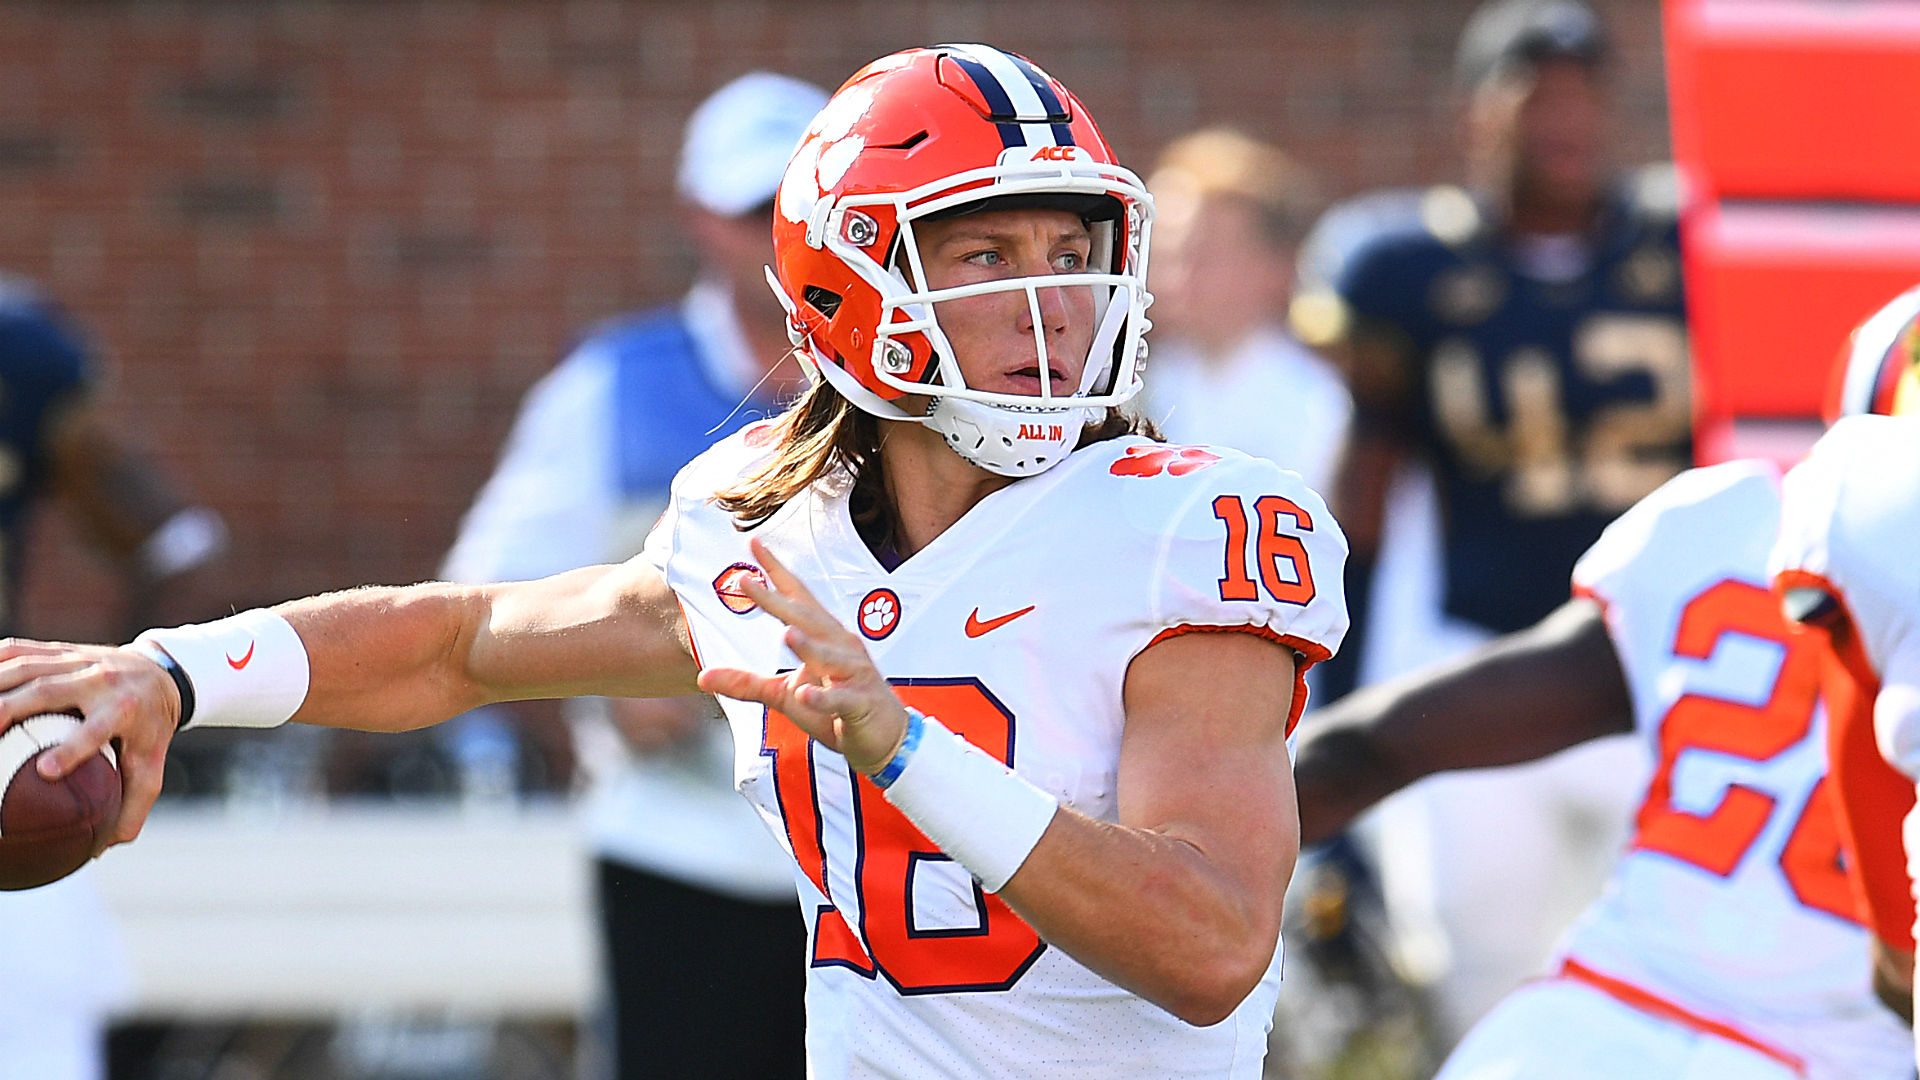 Clemson names Trevor Lawrence starting quarterback | NCAA ...